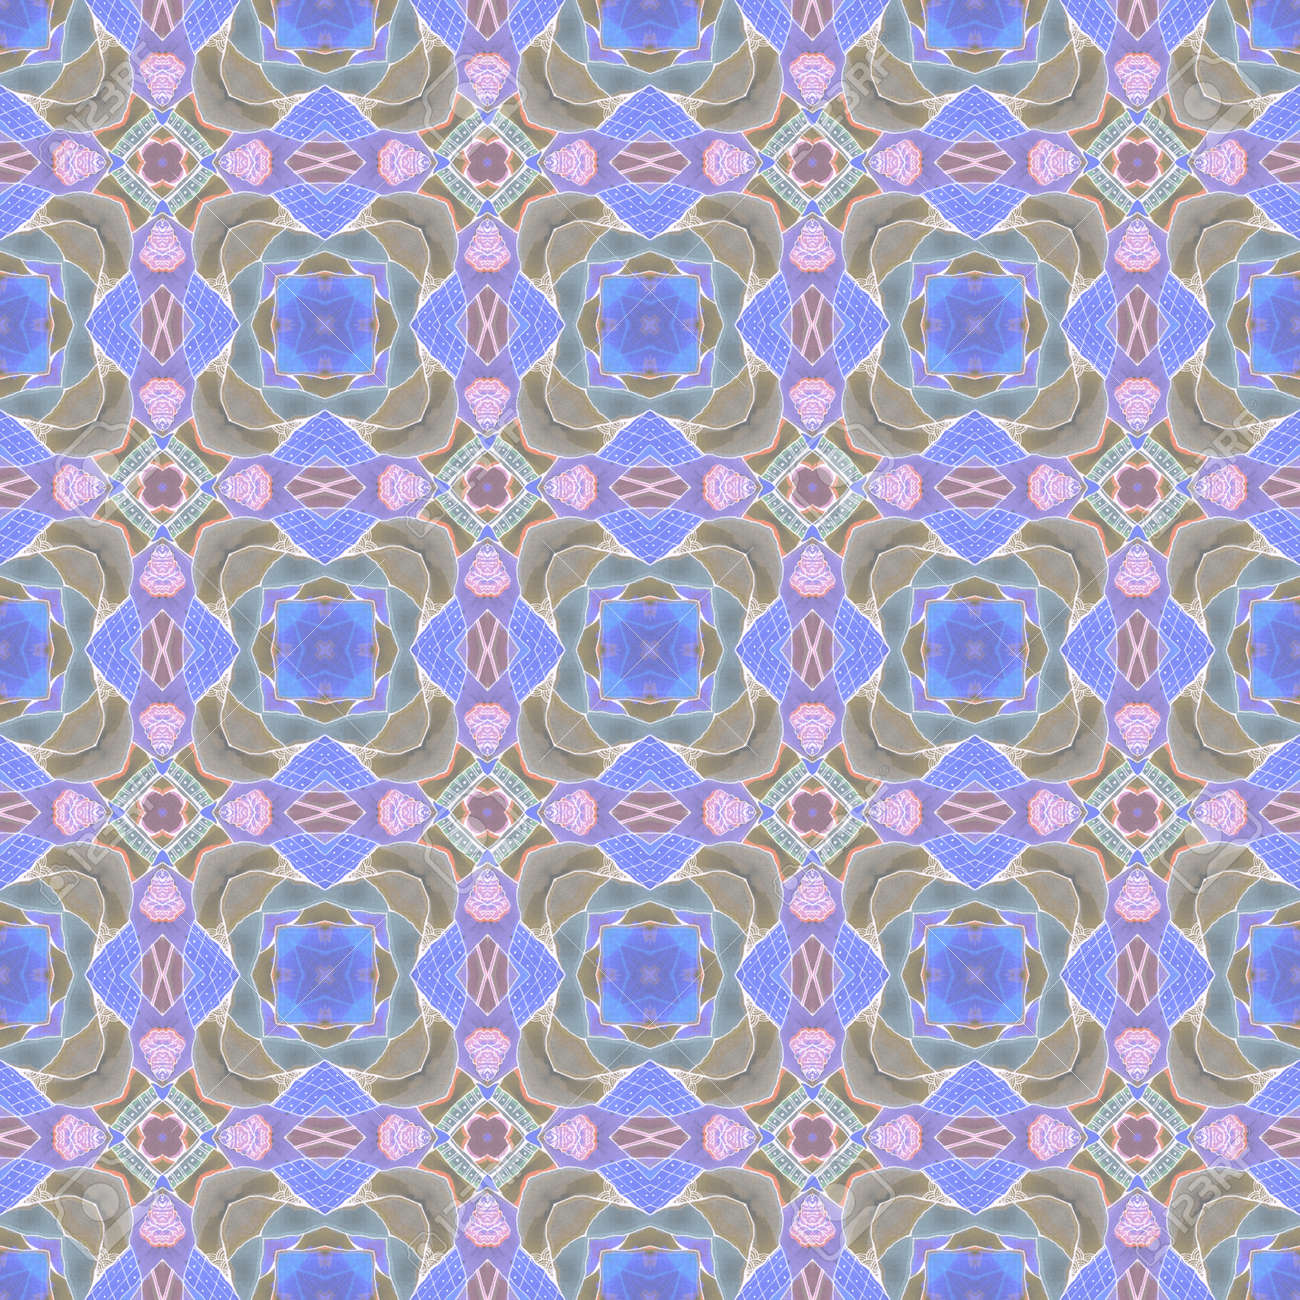 Abstract seamless pattern with regular ornament. Print for fabric, textile, wrapping paper. - 173407848